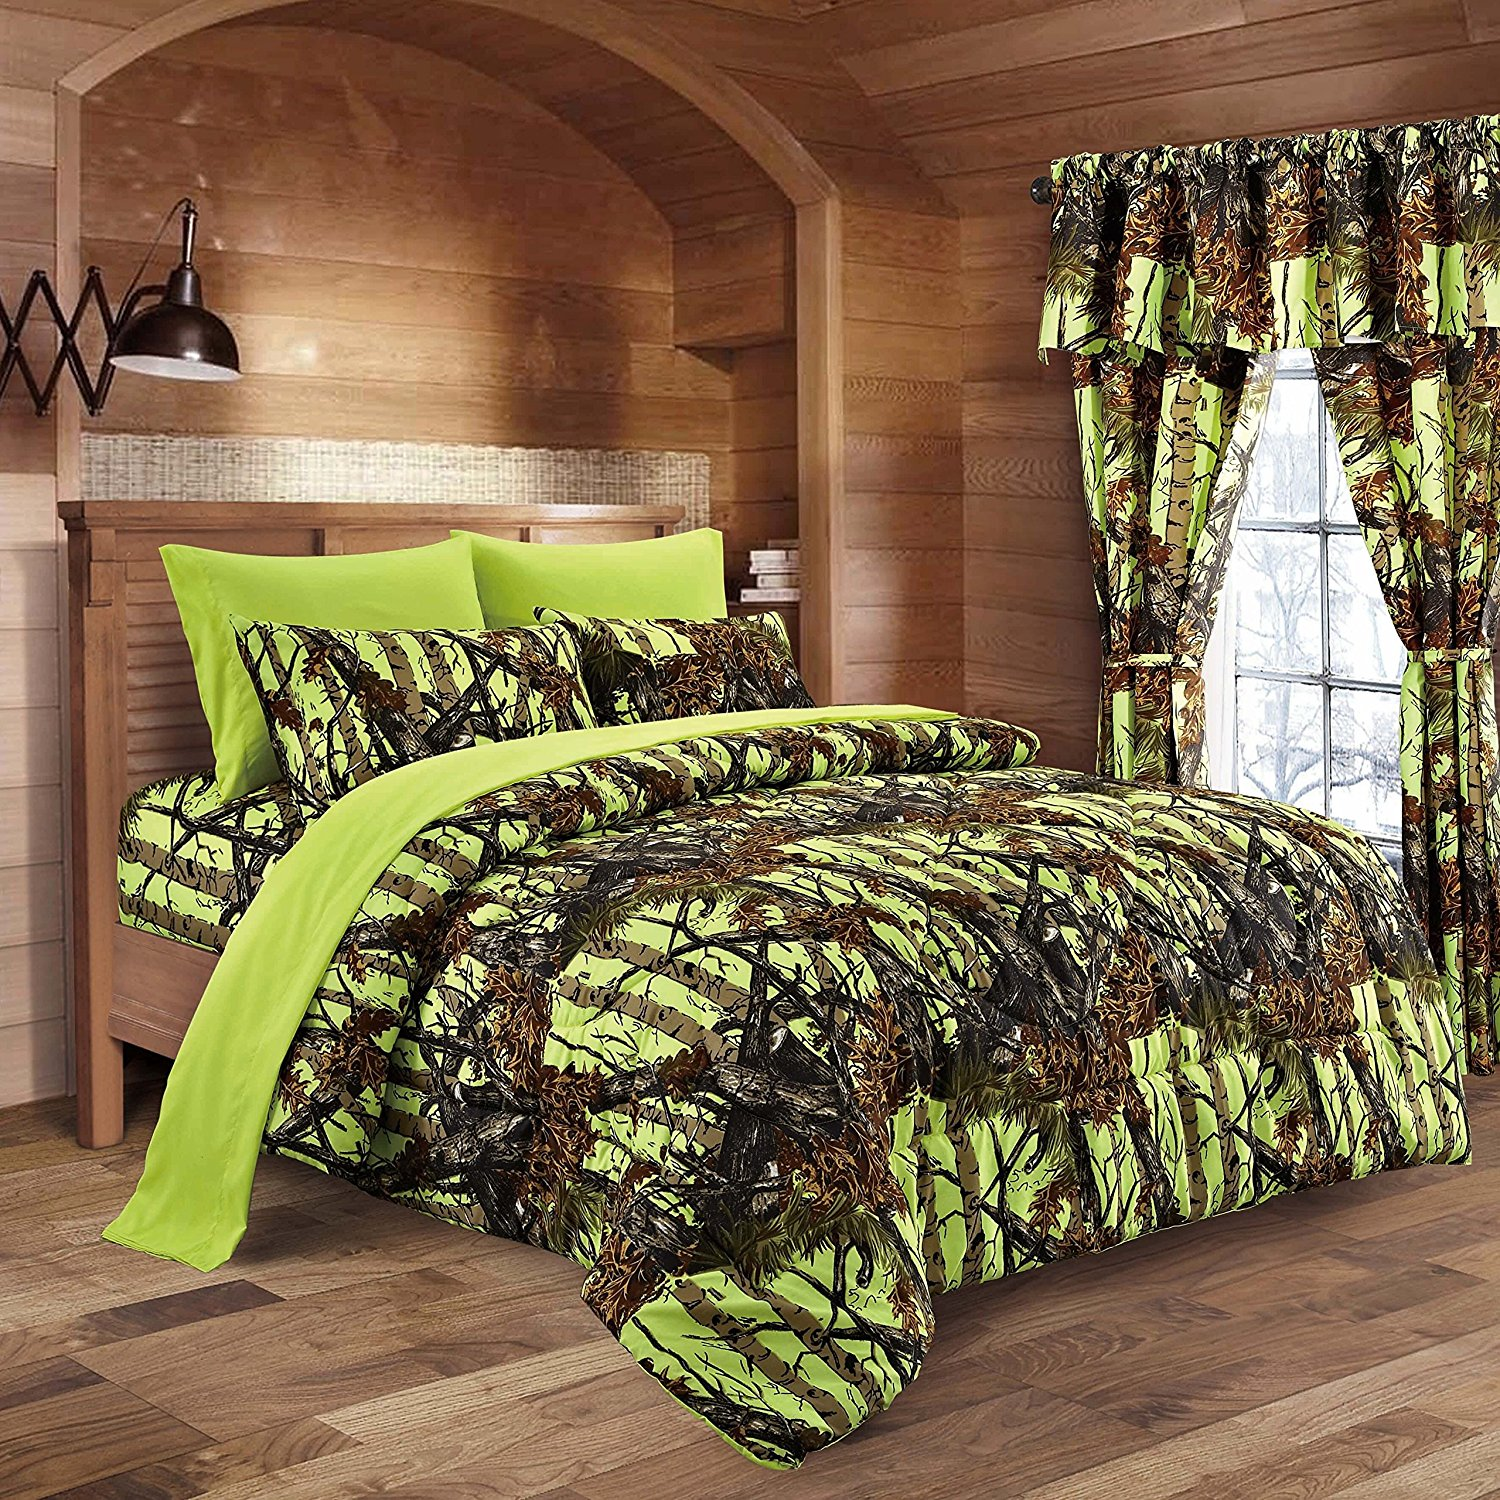 20 Lakes Neon Green Lime Camo Comforter, Sheet, & Pillowcase Set (King, Neon Green)